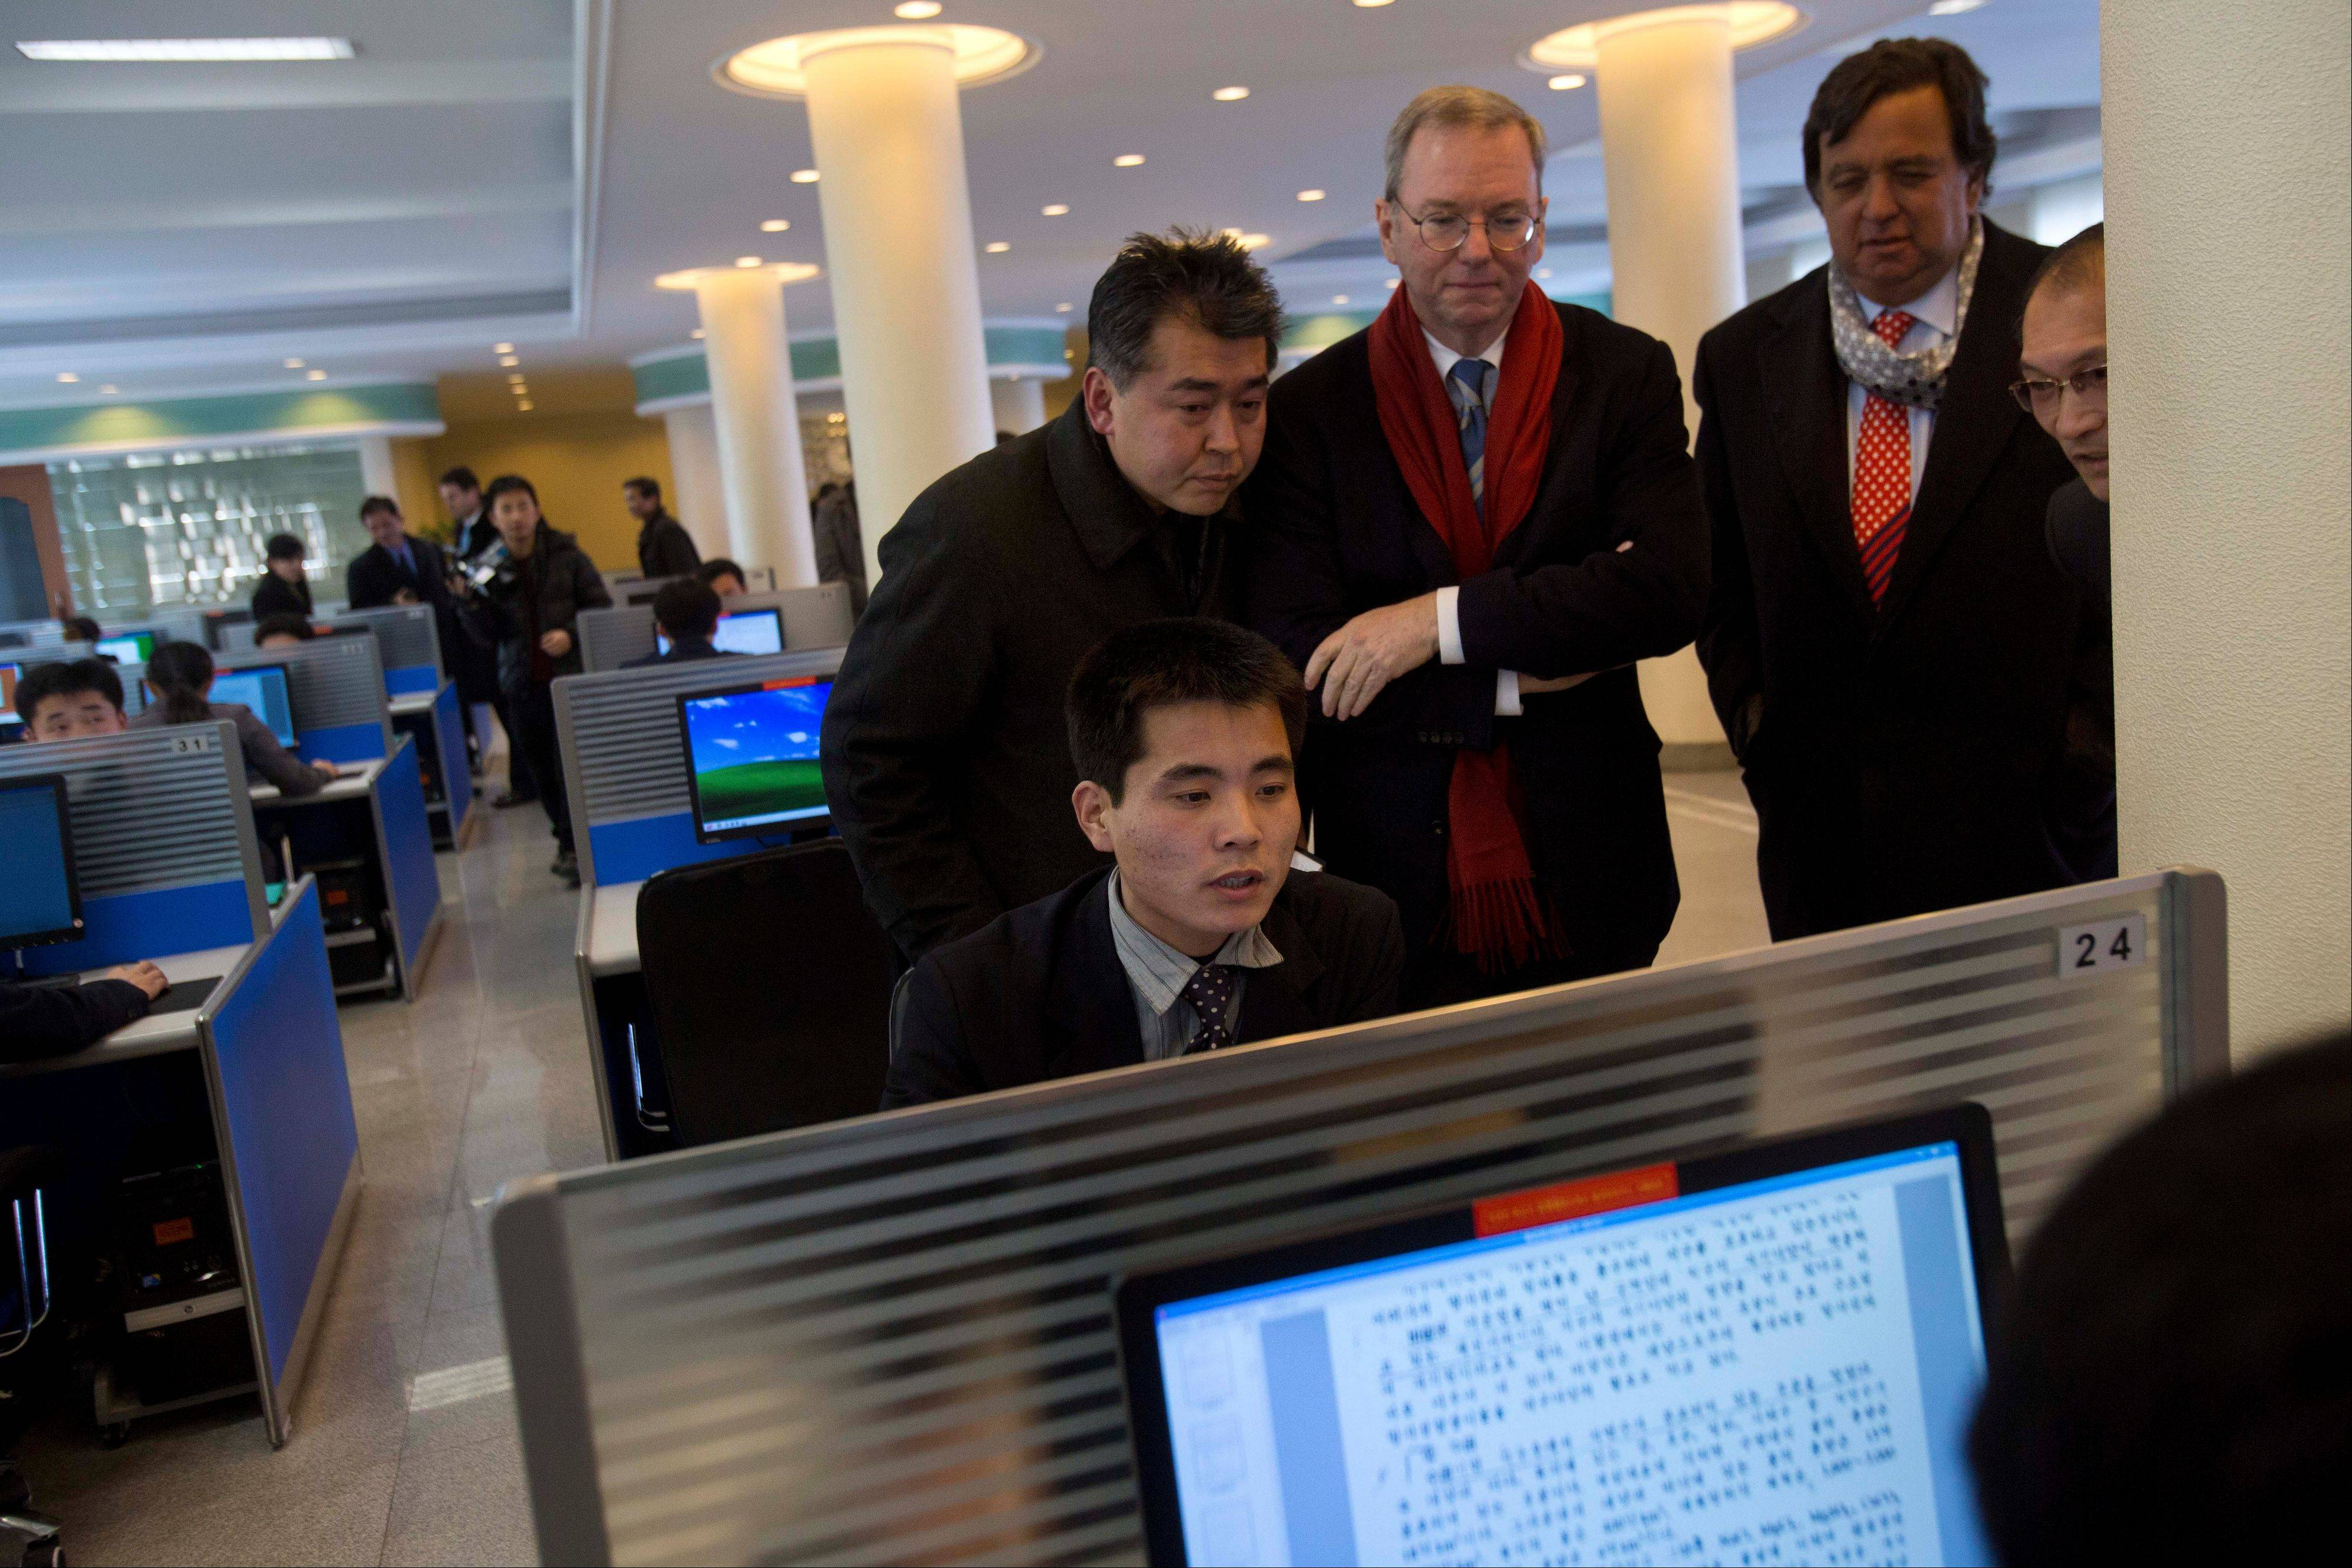 Executive Chairman of Google, Eric Schmidt, third from left, and former New Mexico governor Bill Richardson, second from right, watch Tuesday as a North Korean student surfs the Internet at a computer lab during a tour of Kim Il Sung University in Pyongyang, North Korea. Schmidt is the highest-profile U.S. executive to visit North Korea -- a country with notoriously restrictive online policies -- since young leader Kim Jong Un took power a year ago.